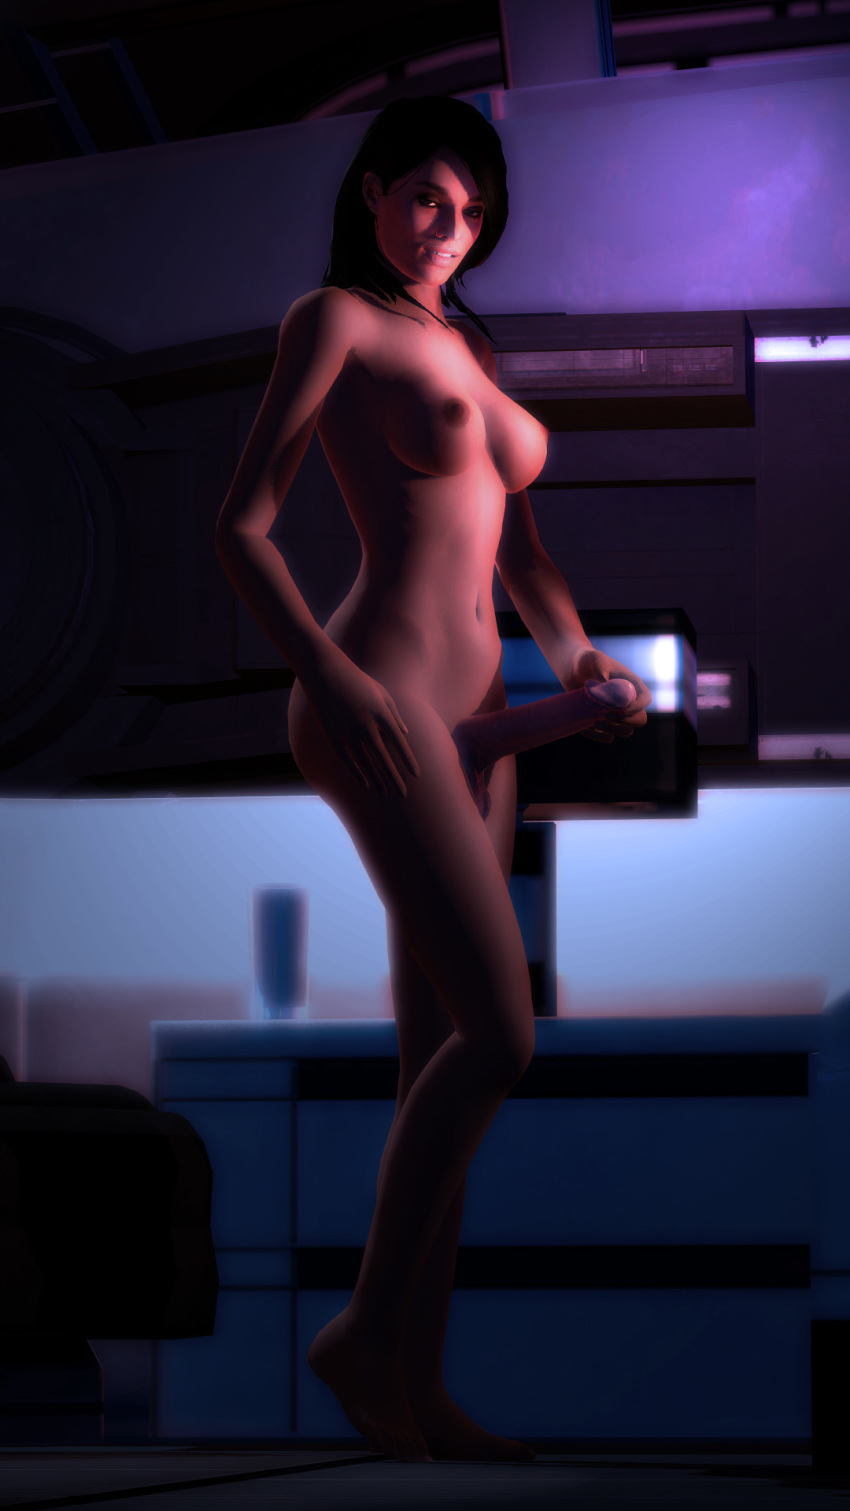 Mass effect shemale porn hentia photo